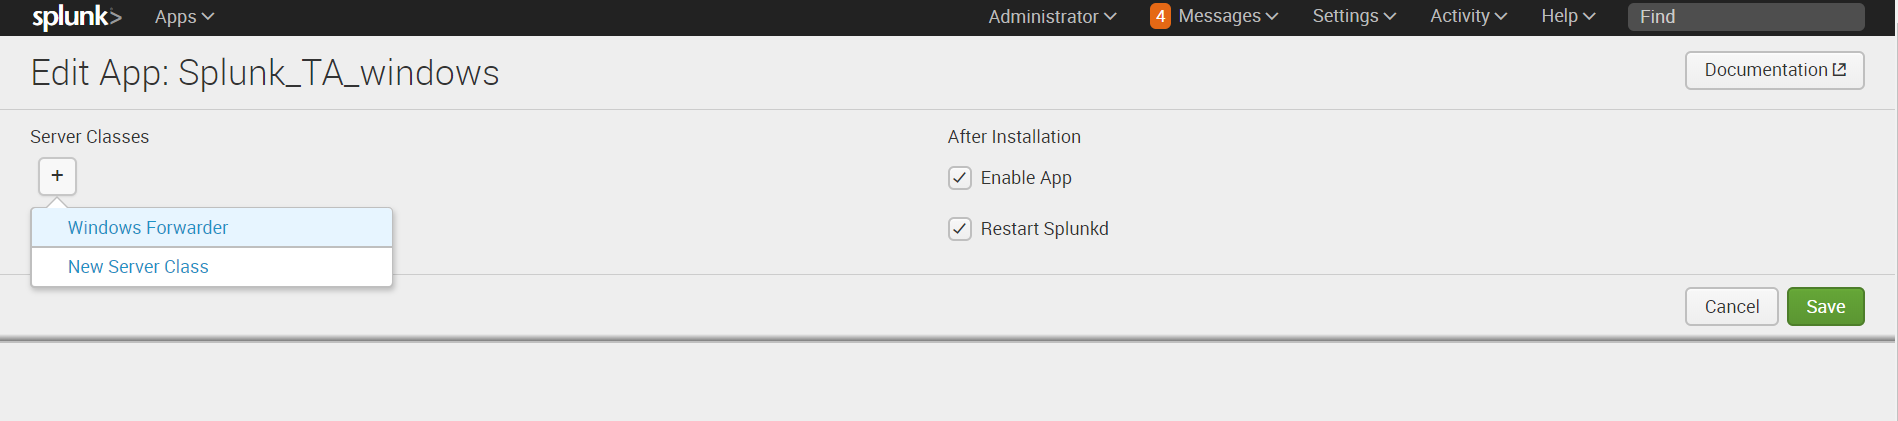 Splunk – Установка агентов для сбора логов Windows и Linux - 13